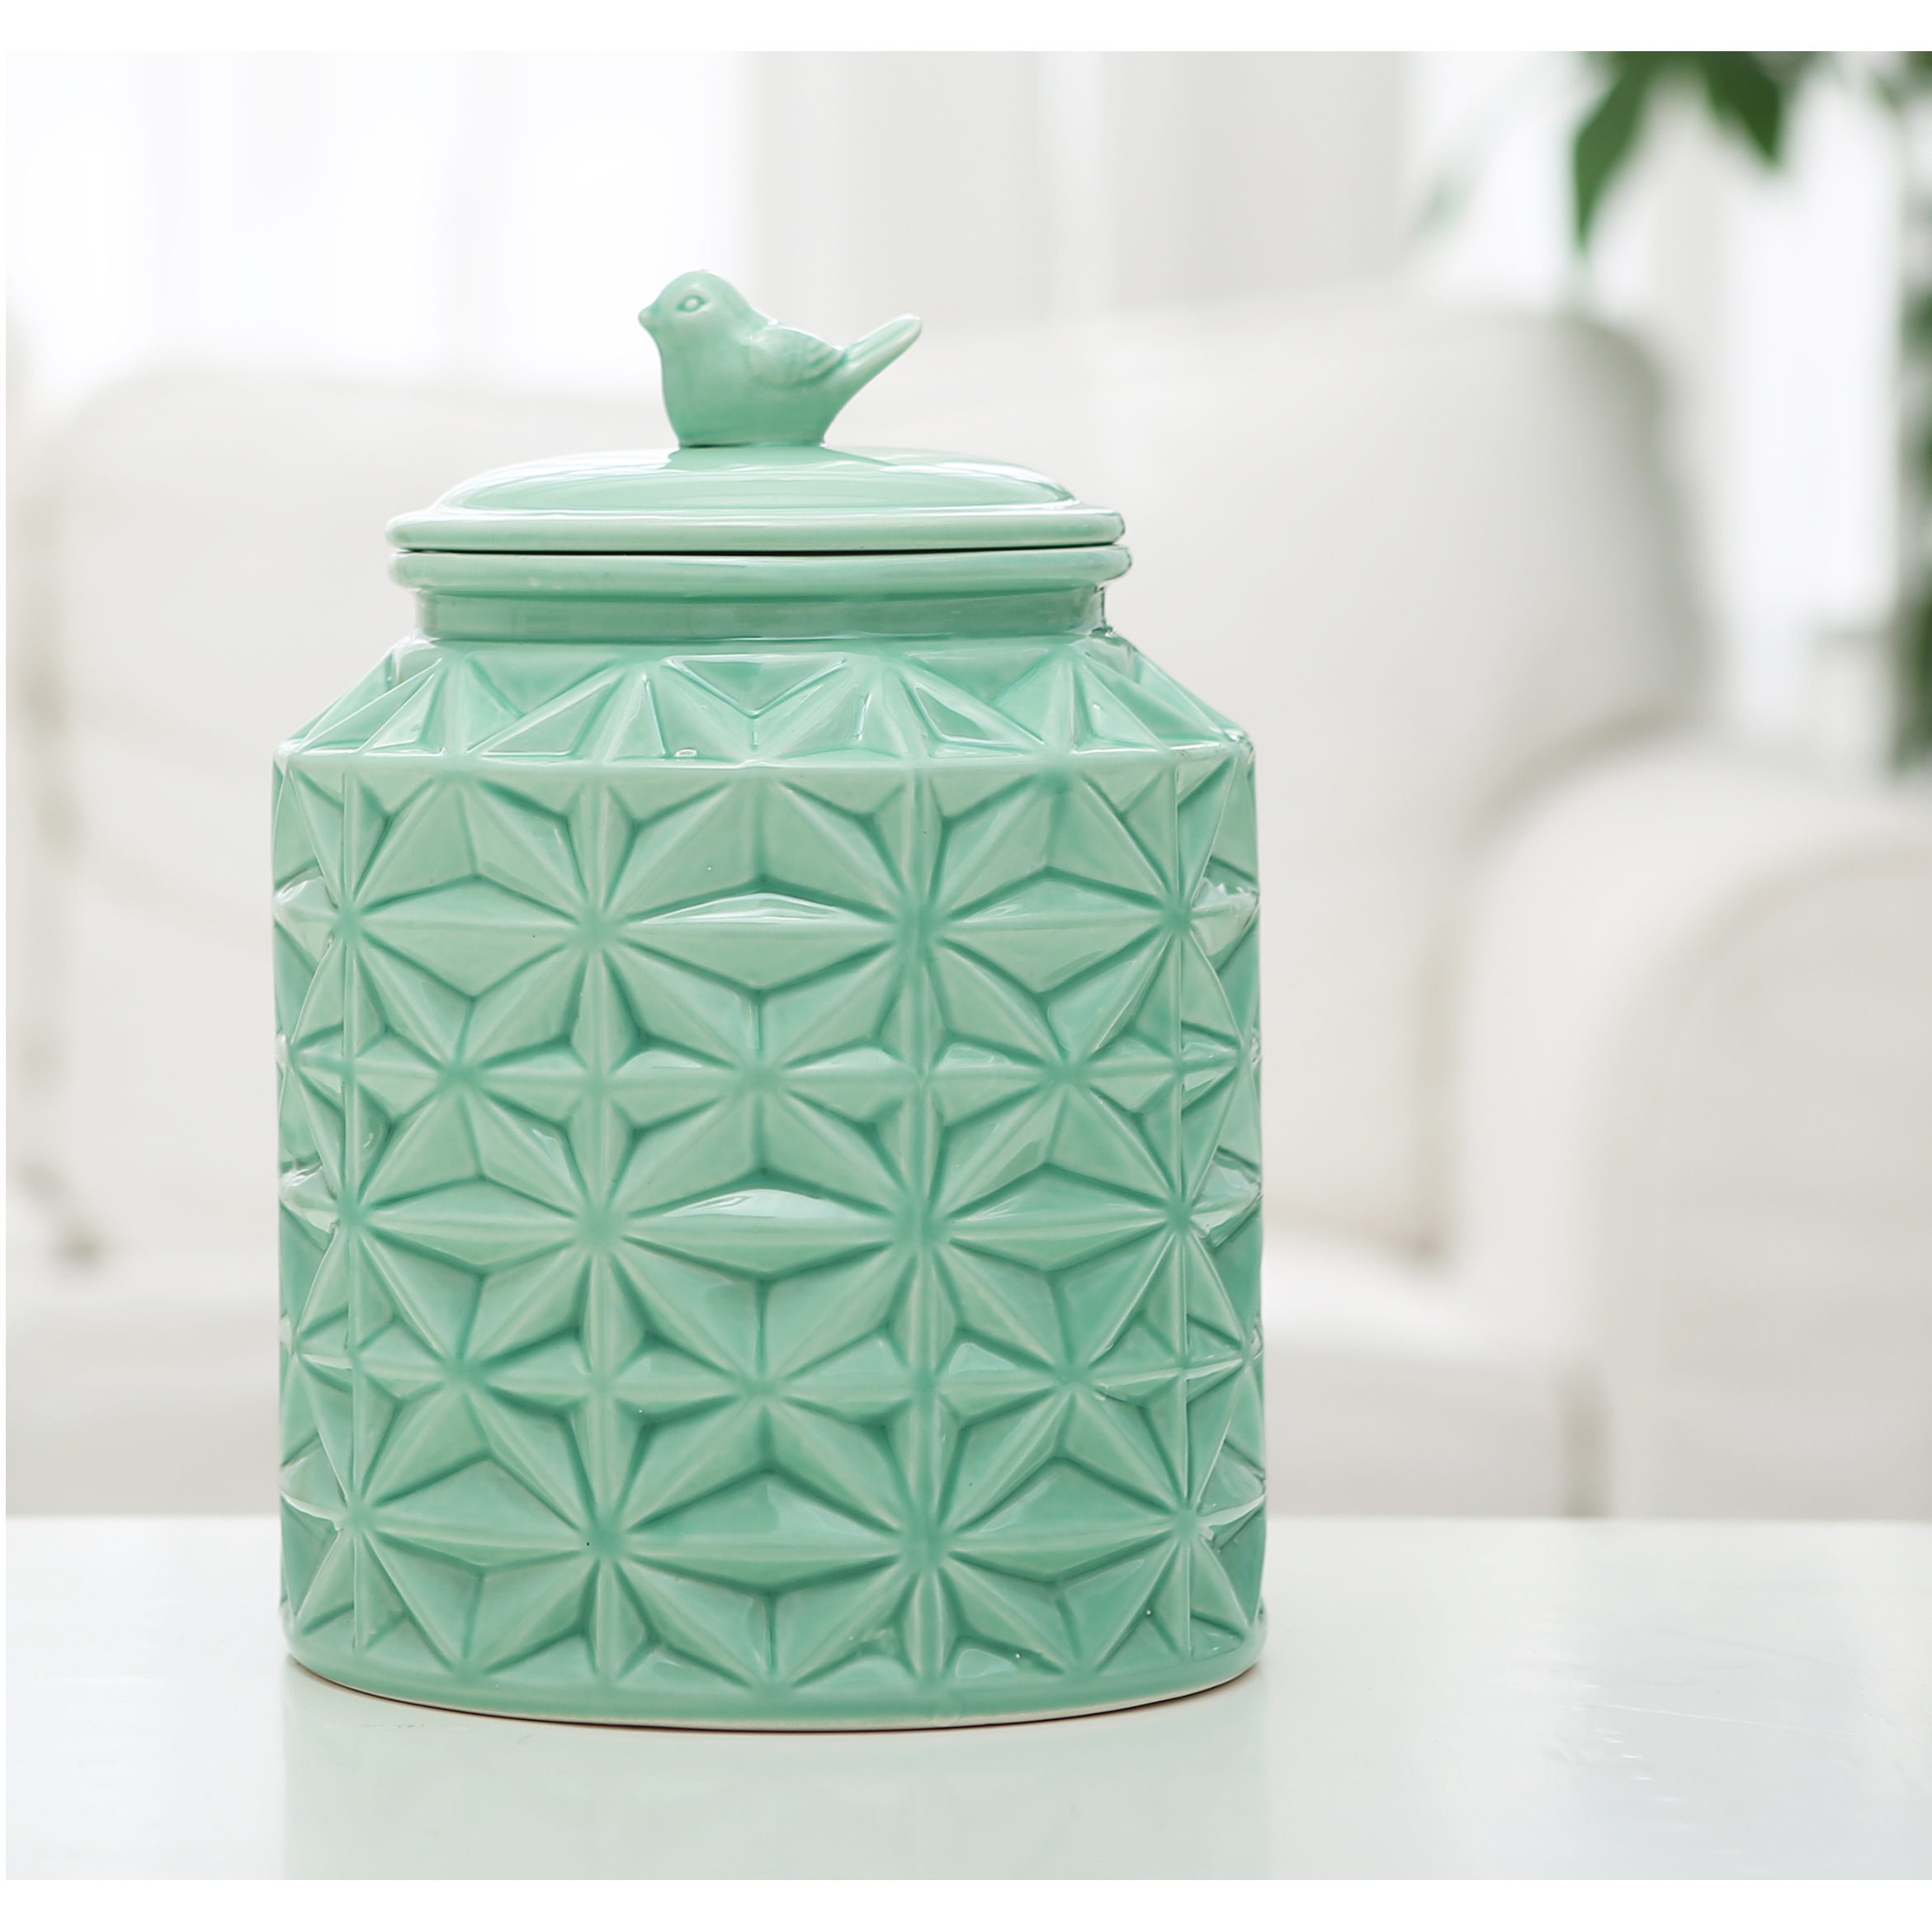 Ceramic Cookie Jar Sets Turquoise Ceramic Kitchen Flour Canister Cookie Jar